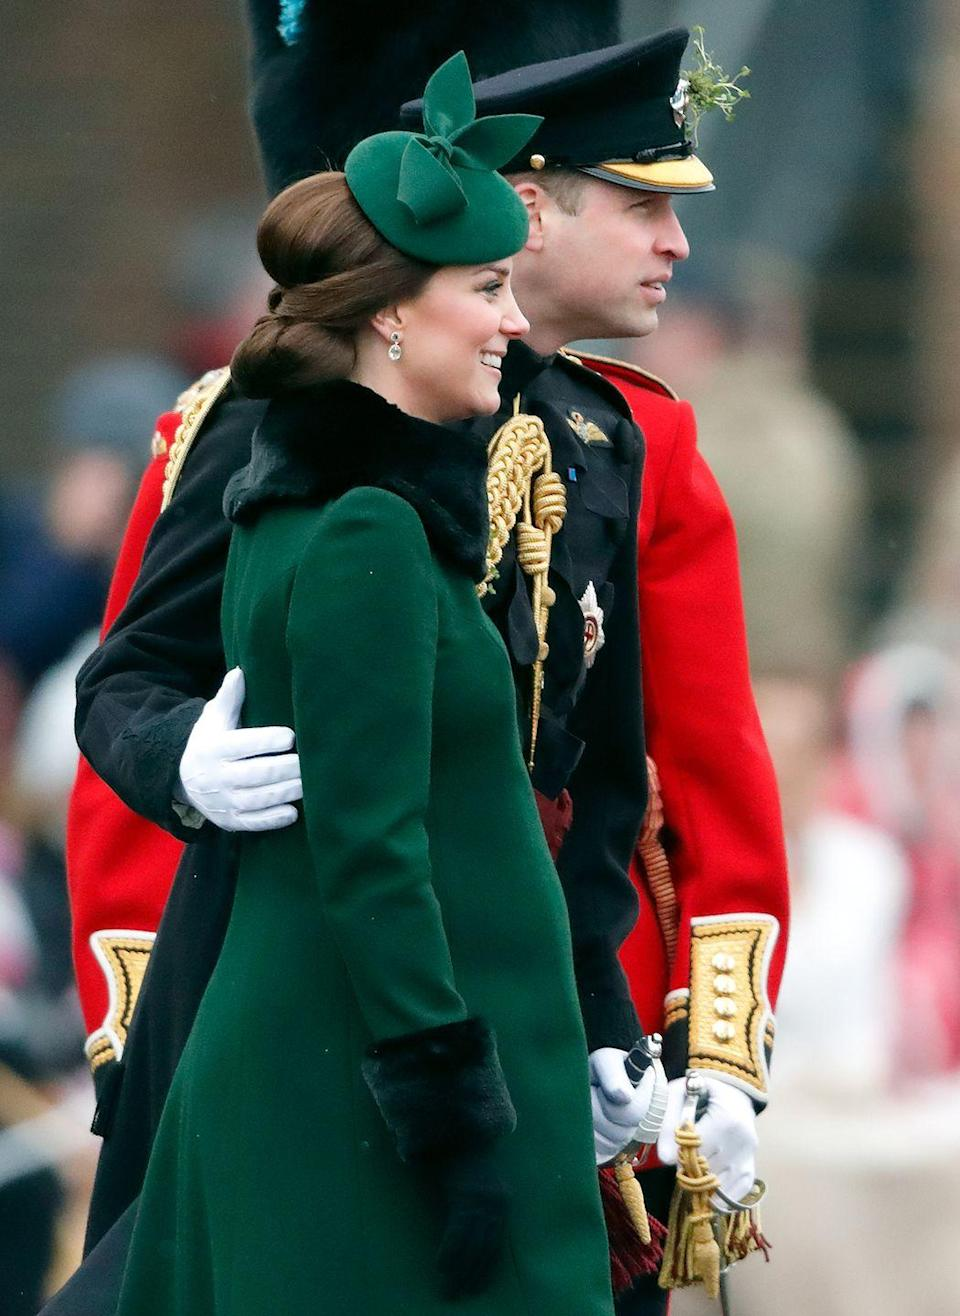 <p>The Duke of Cambridge was photographed putting an arm around his pregnant wife at the annual Irish Guards St Patrick's Day Parade at Cavalry Barracks just a month before she gave birth to Prince Louis, March 2018.</p>